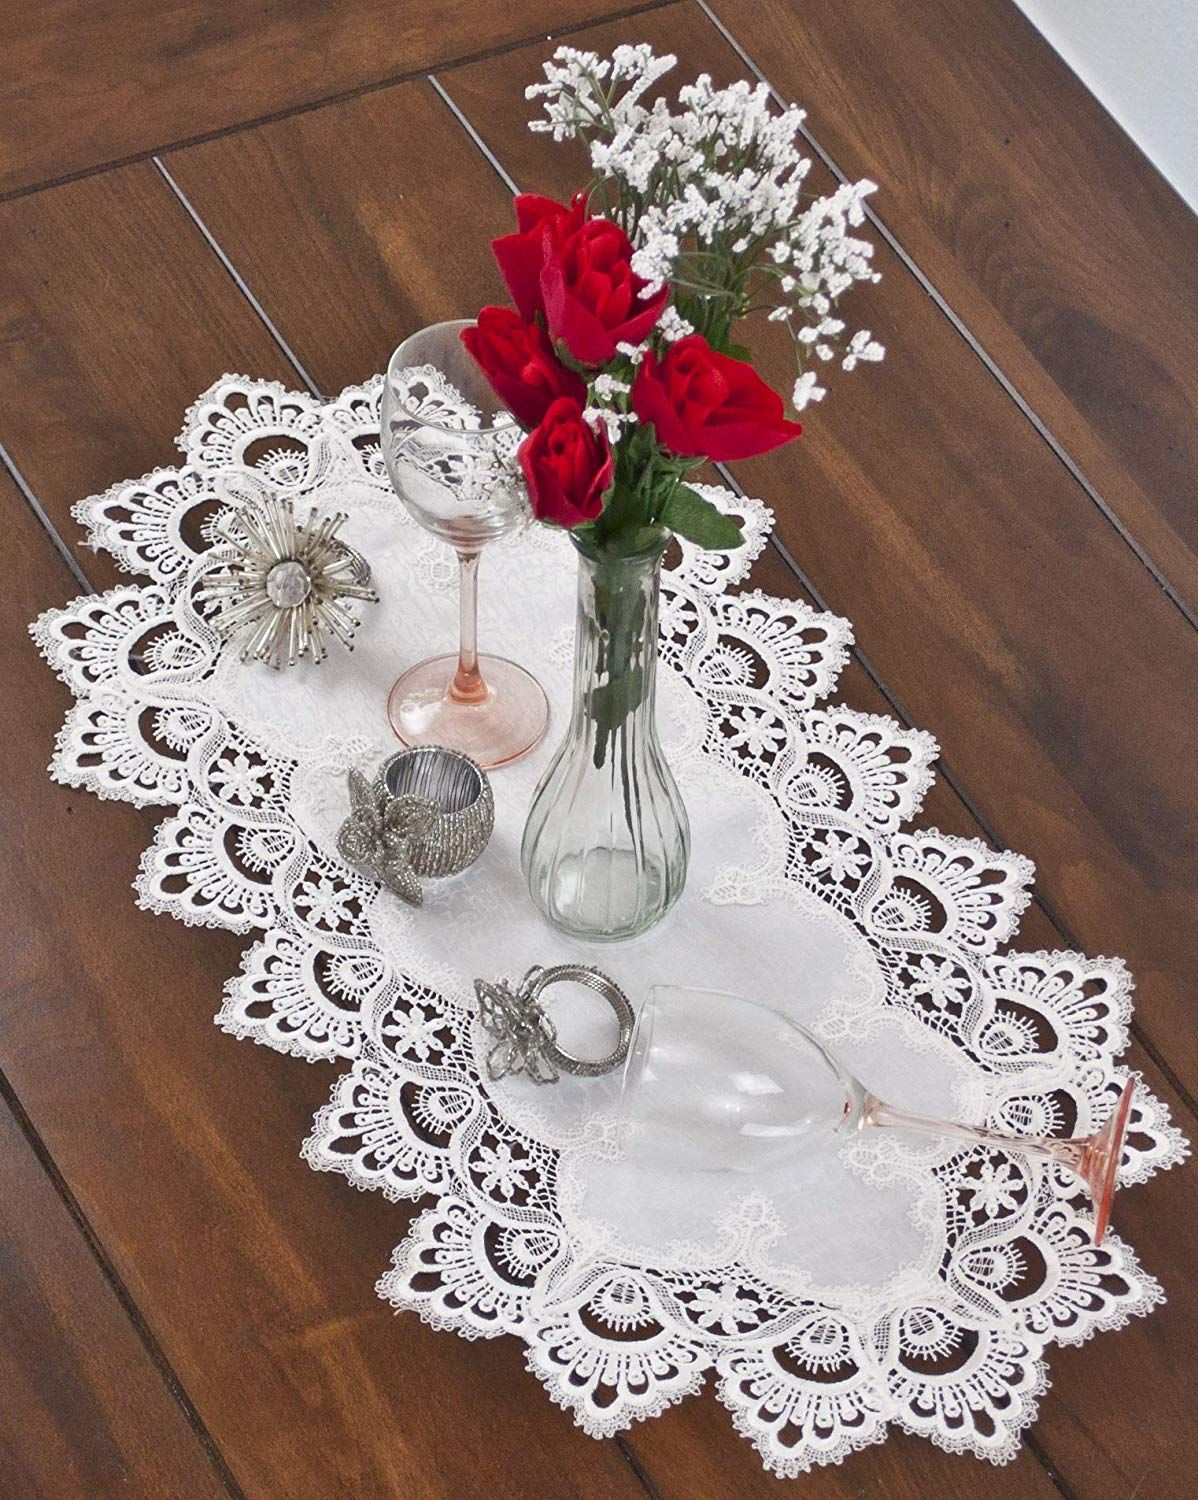 Decor White Jacquard Peacock Tail Lace Dresser Scarf Table Runner Table Runners Wedding Elegant Tablecloth Table Runners